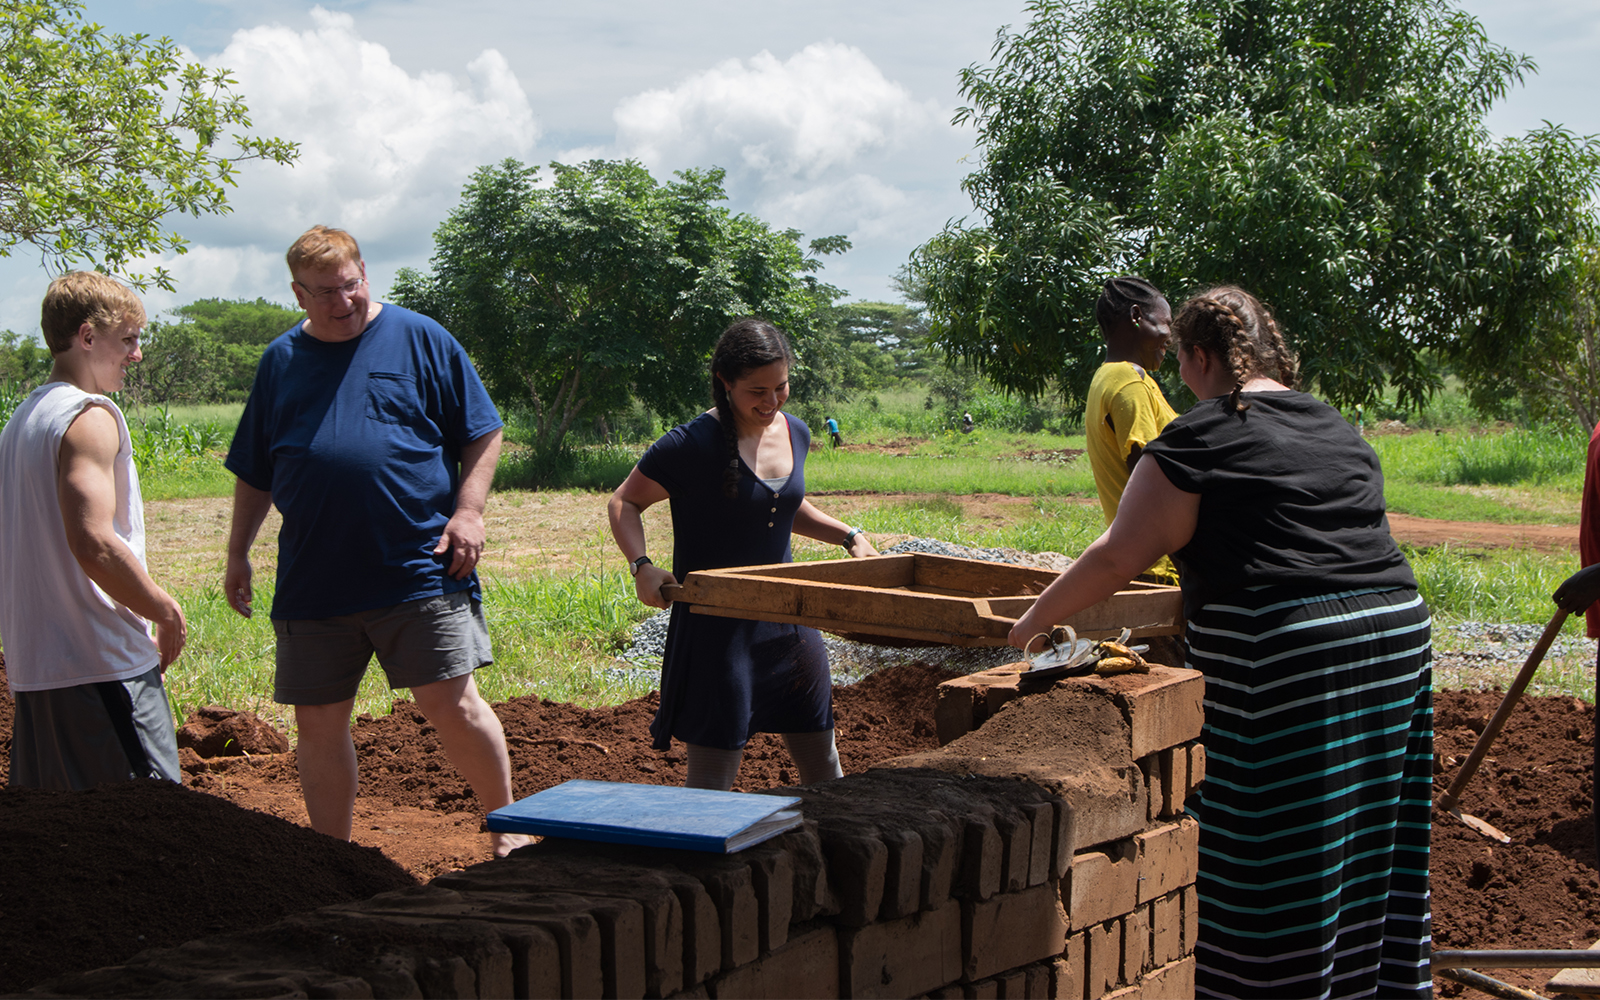 Olivet_Uganda mission trip 2017_Missions In Action_Web.jpg